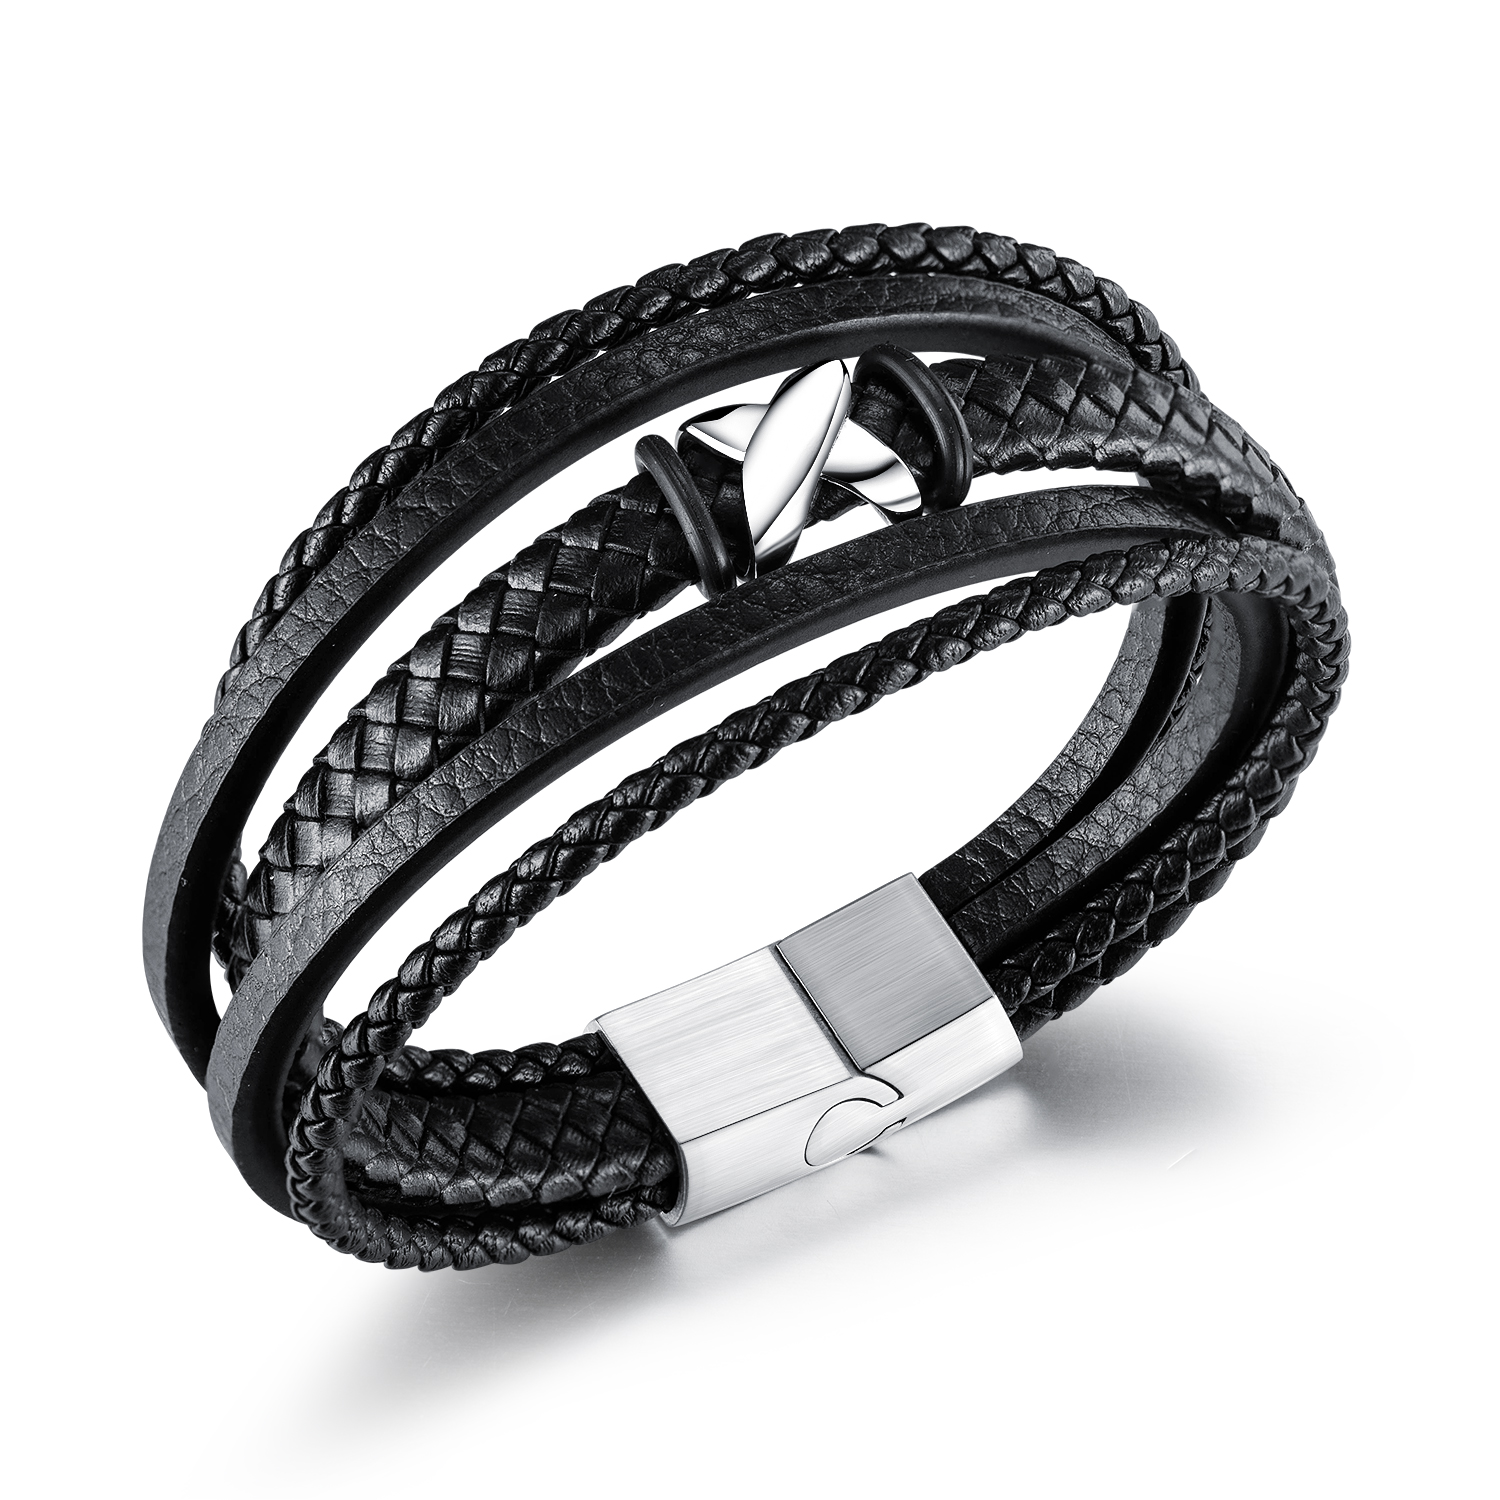 Top selling accessories European and American fashion woven multilayer Leather Bracelet personalized stainless steel magnetic buckle leather bracelet n1391